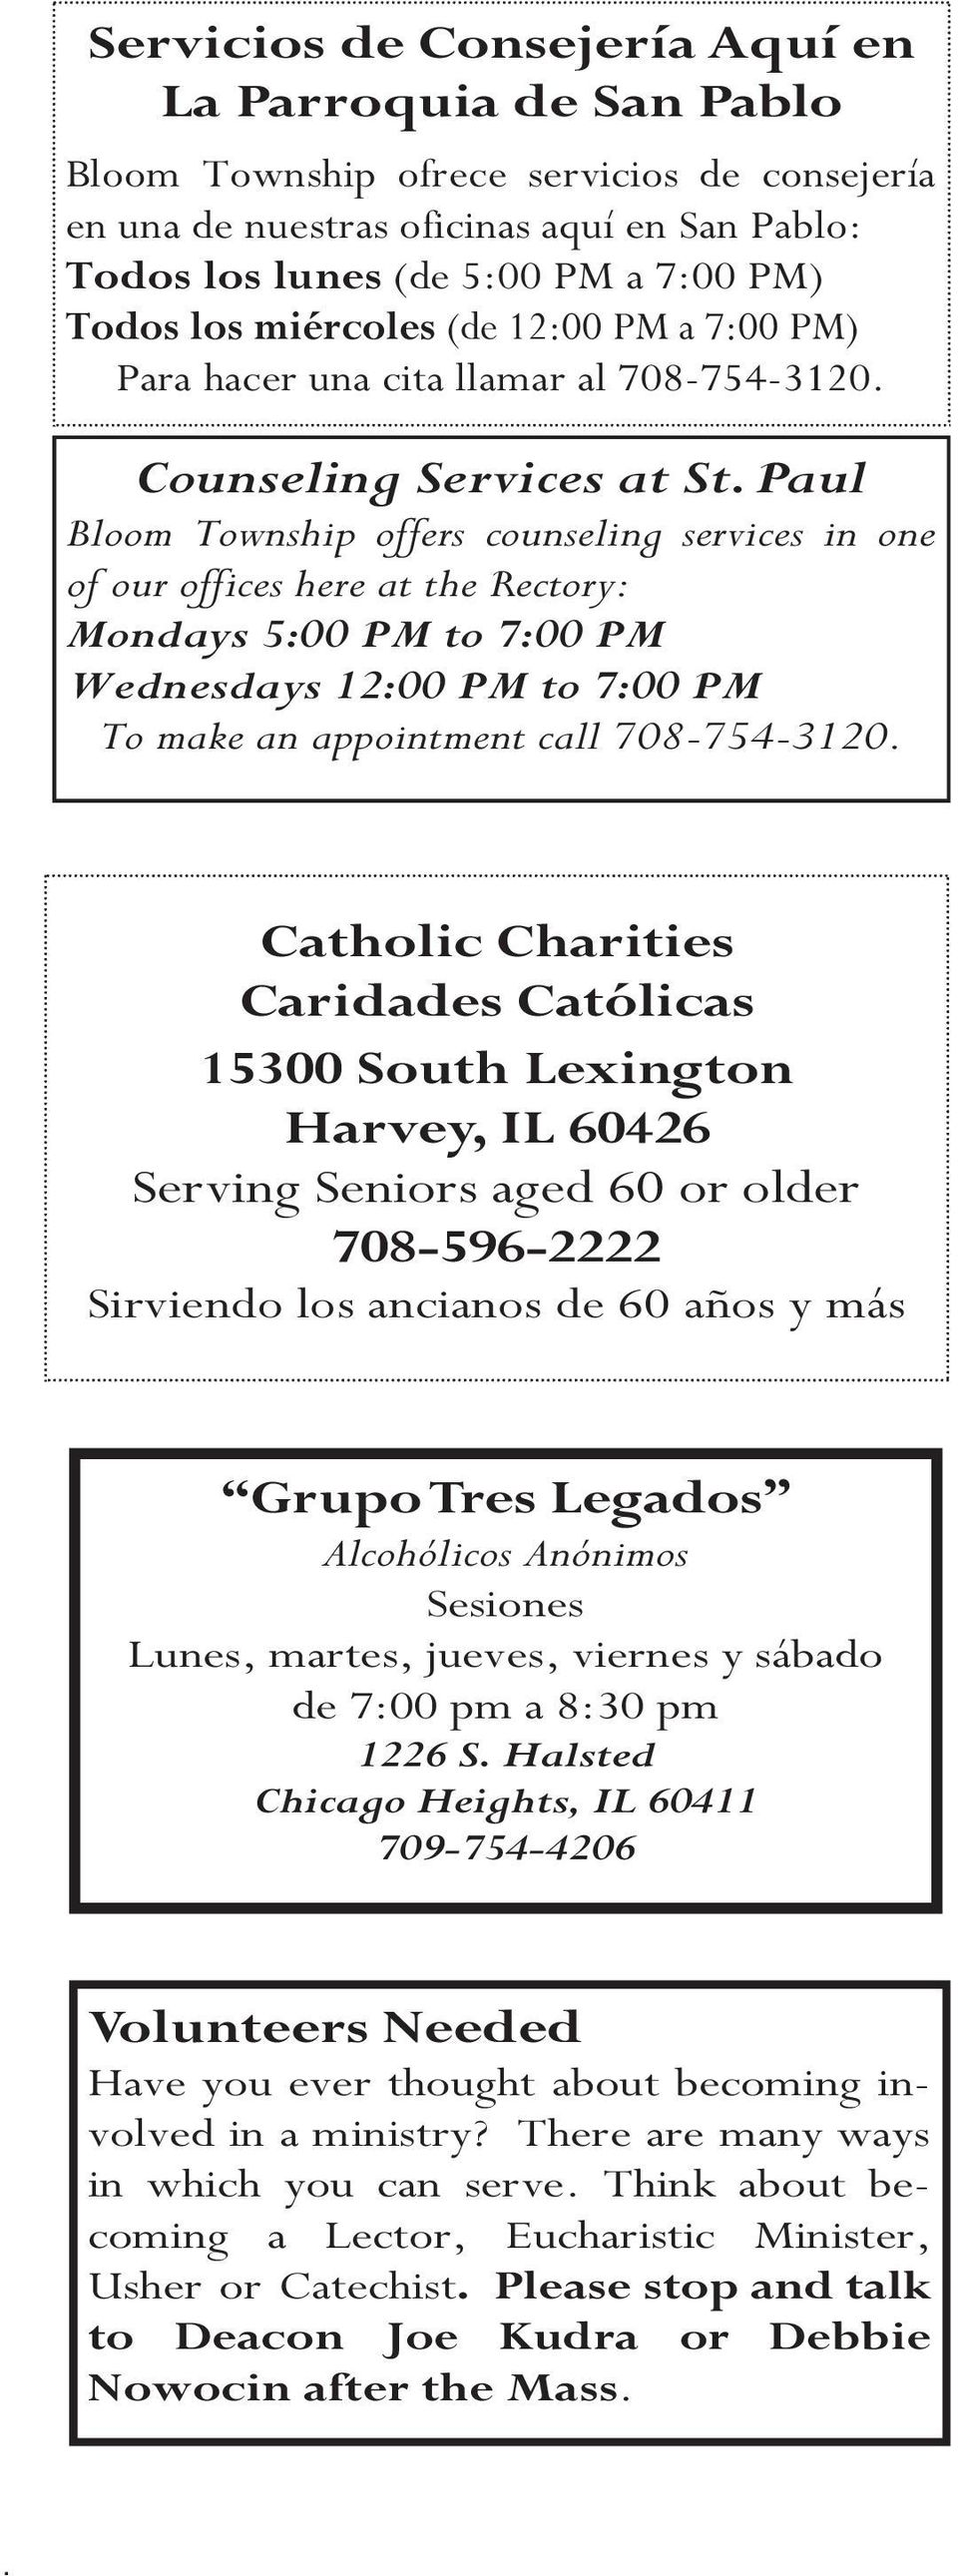 Mondays 5:00 PM to 7:00 PM Wednesdays 12:00 PM to 7:00 PM To make an appointment call 708-754-3120 Catholic Charities Caridades Católicas 15300 South Lexington Harvey, IL 60426 Serving Seniors aged